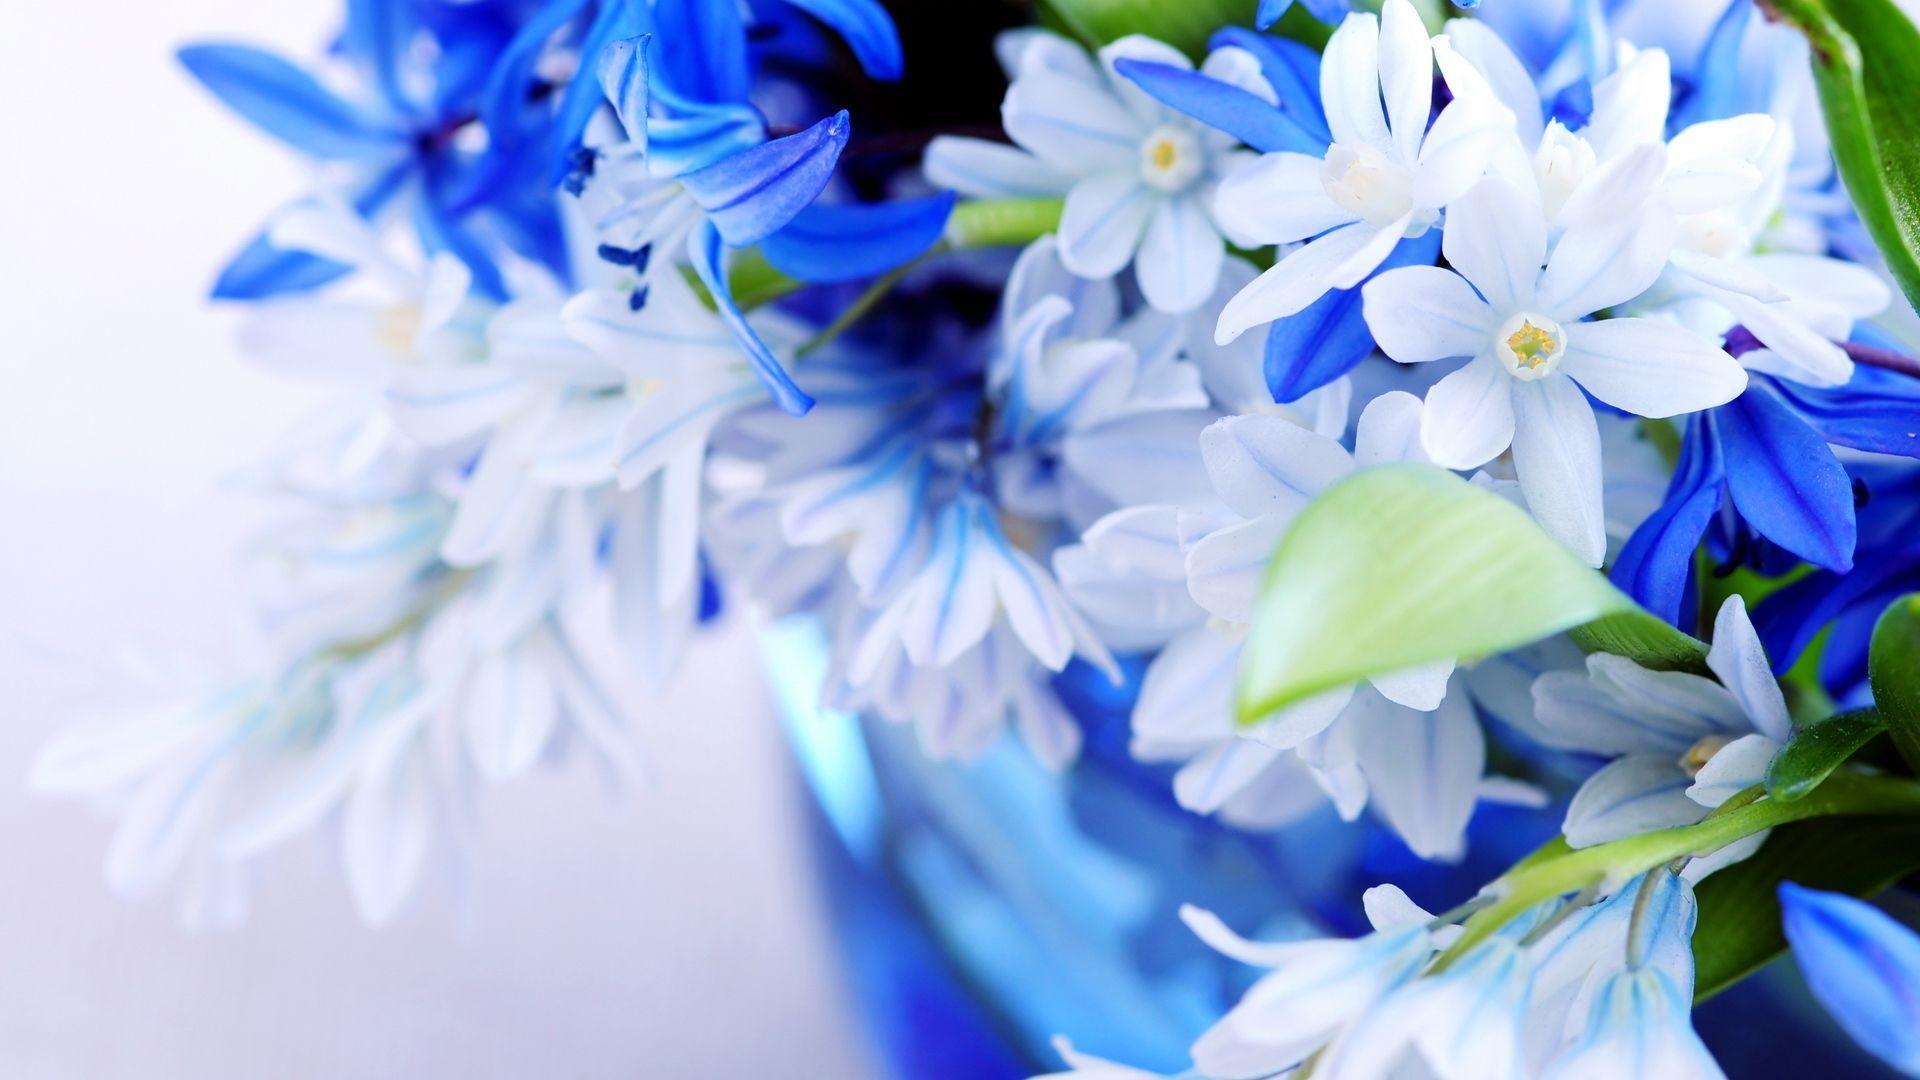 HD wallpaper download | Full Screen Flowers #7785 Wallpaper ...